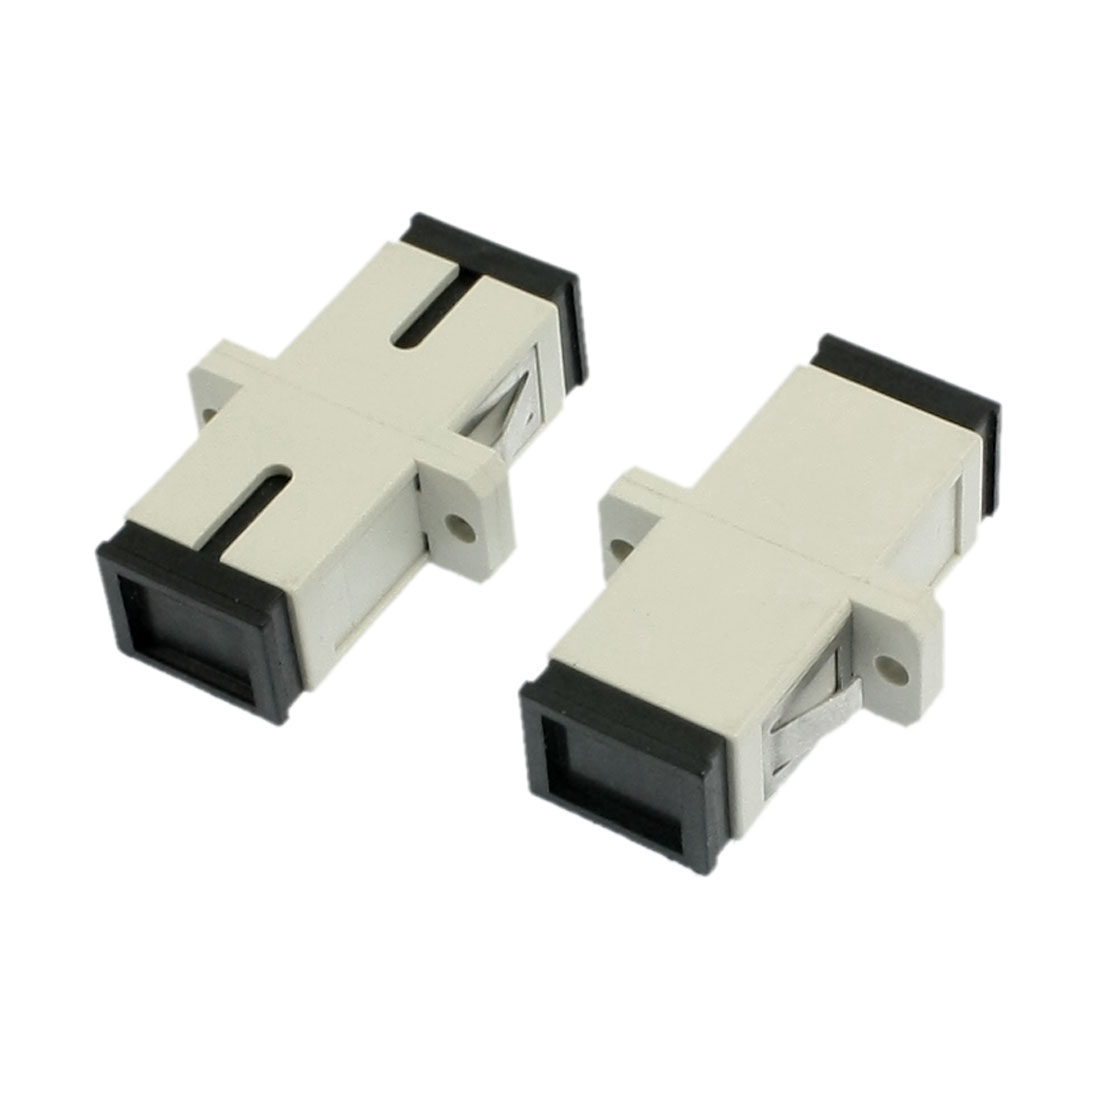 SC/SC Multimode Simplex Flange Fiber Optical Connector Adapter Coupler 2 Pcs